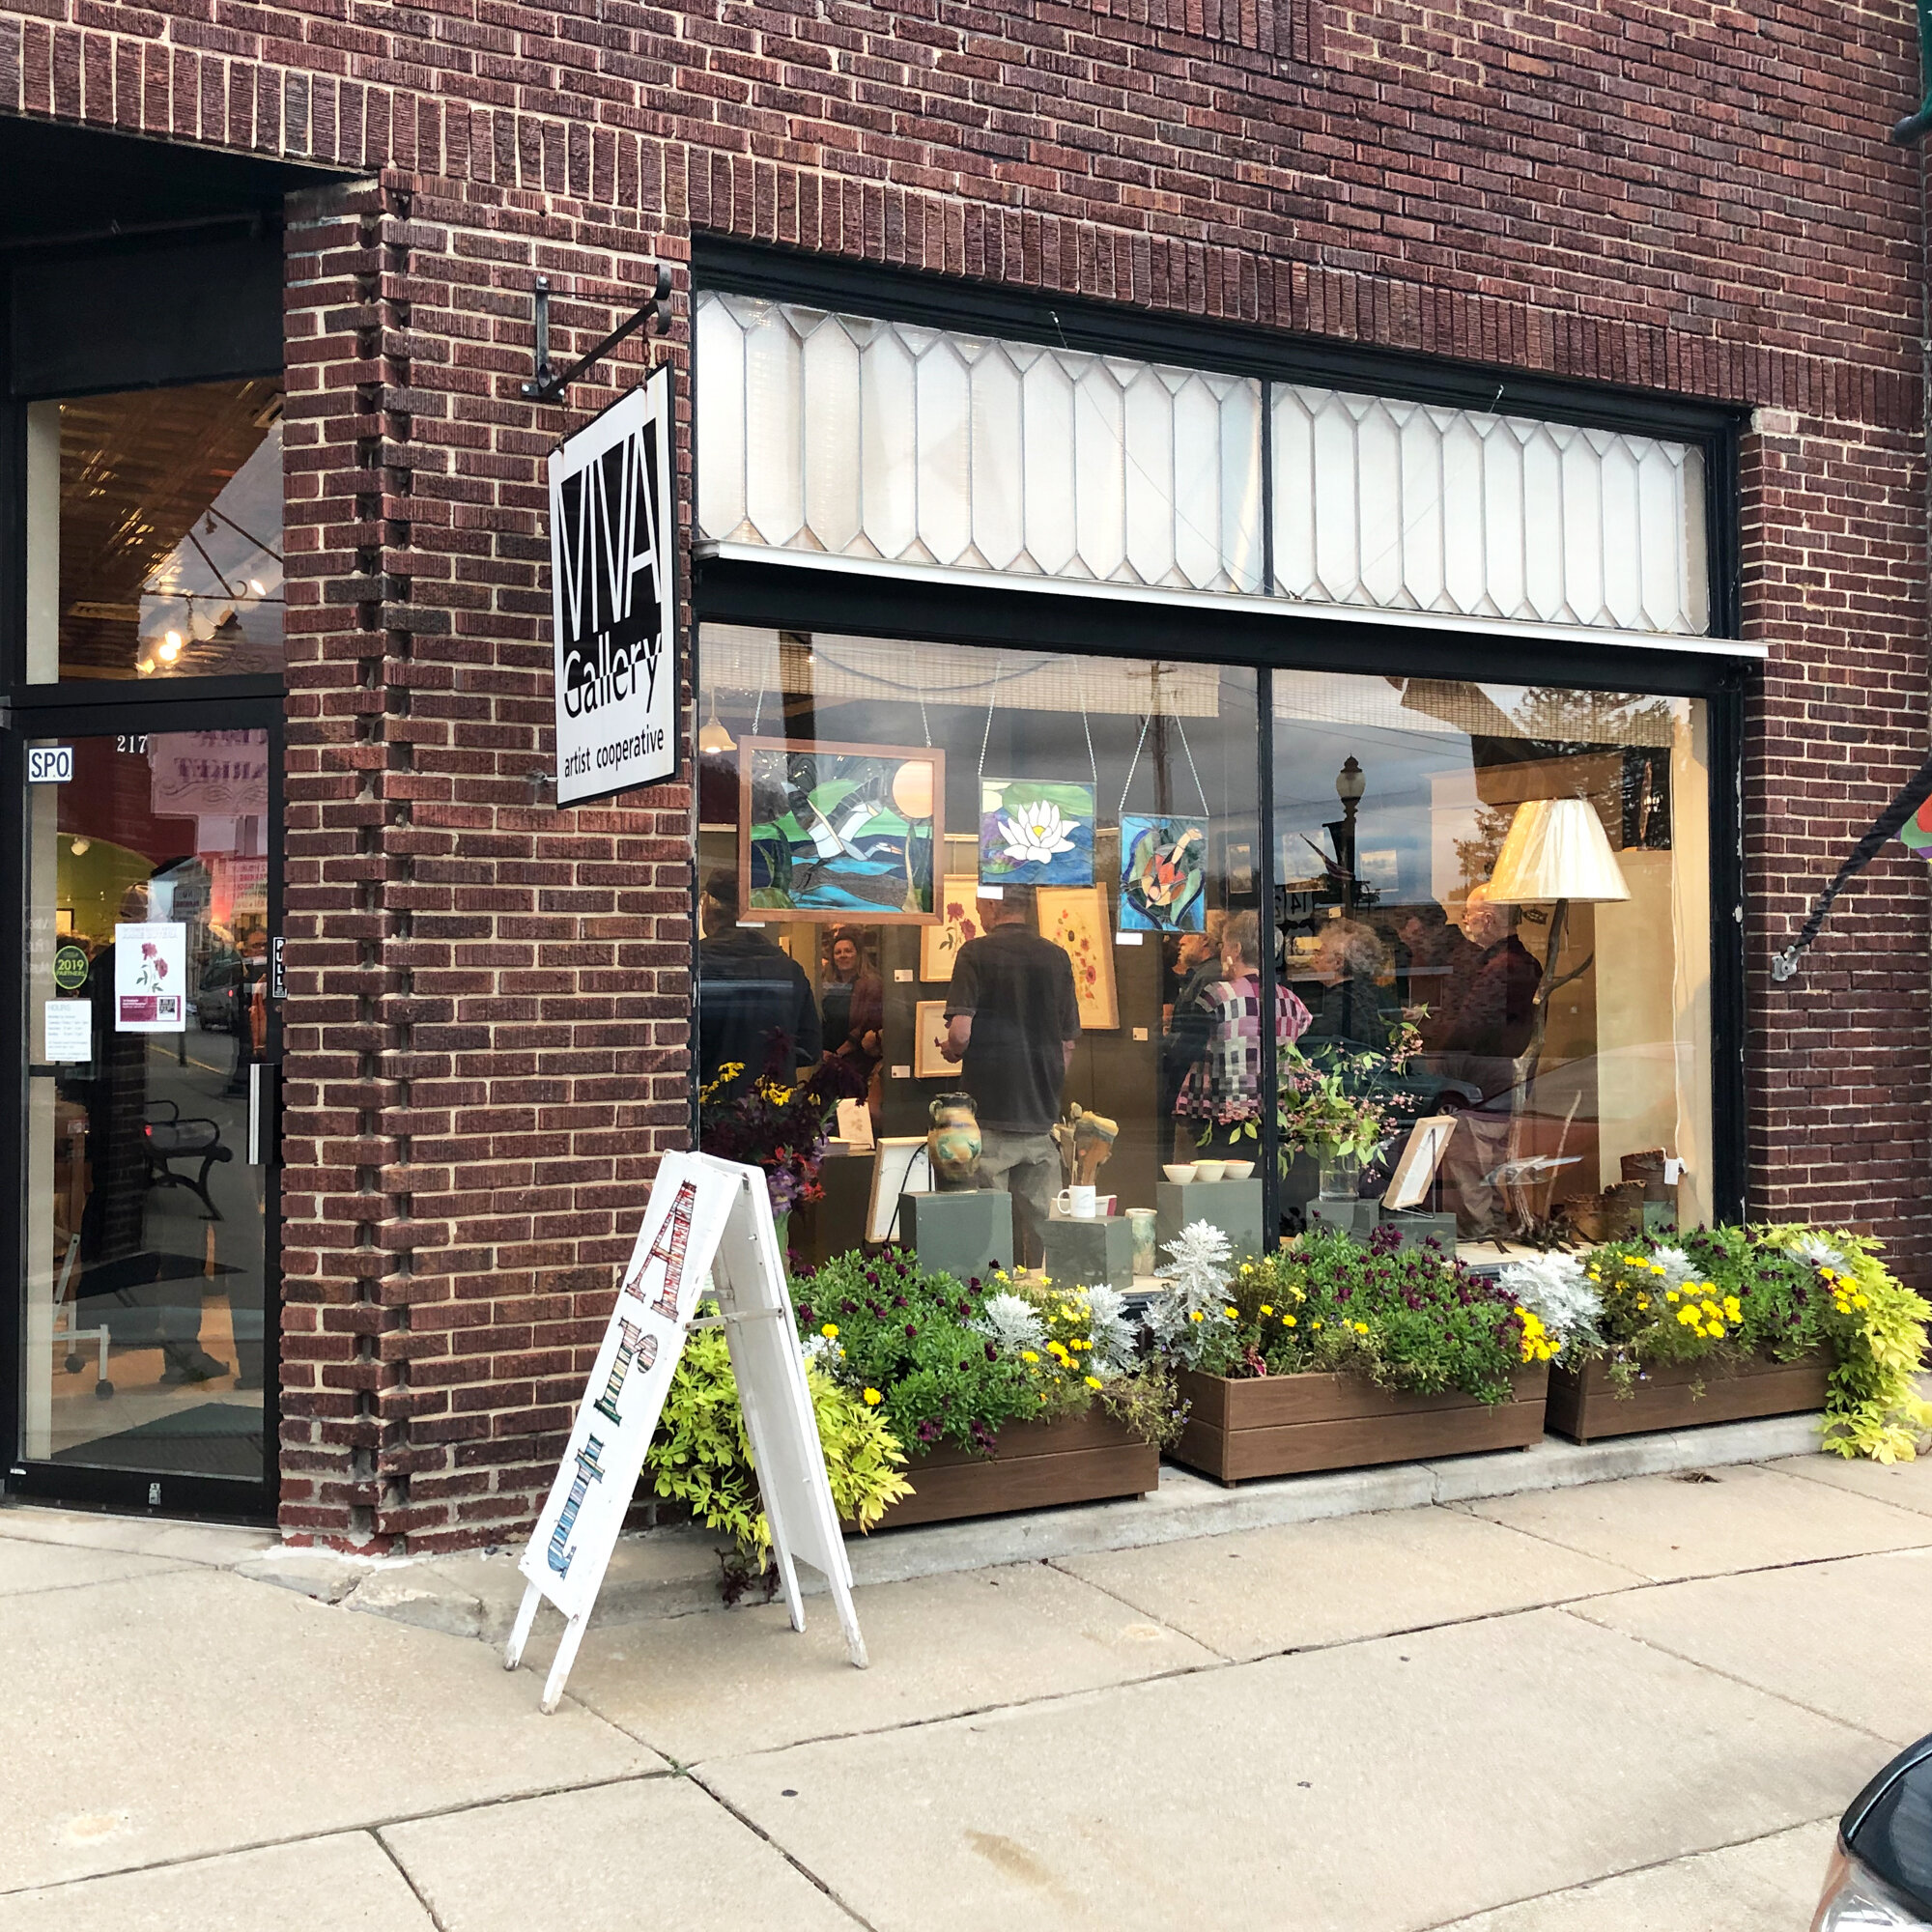 Viva Gallery in Viroqua Wisconsin is an Artist Cooperative that Hosts Monthly Guest Artists